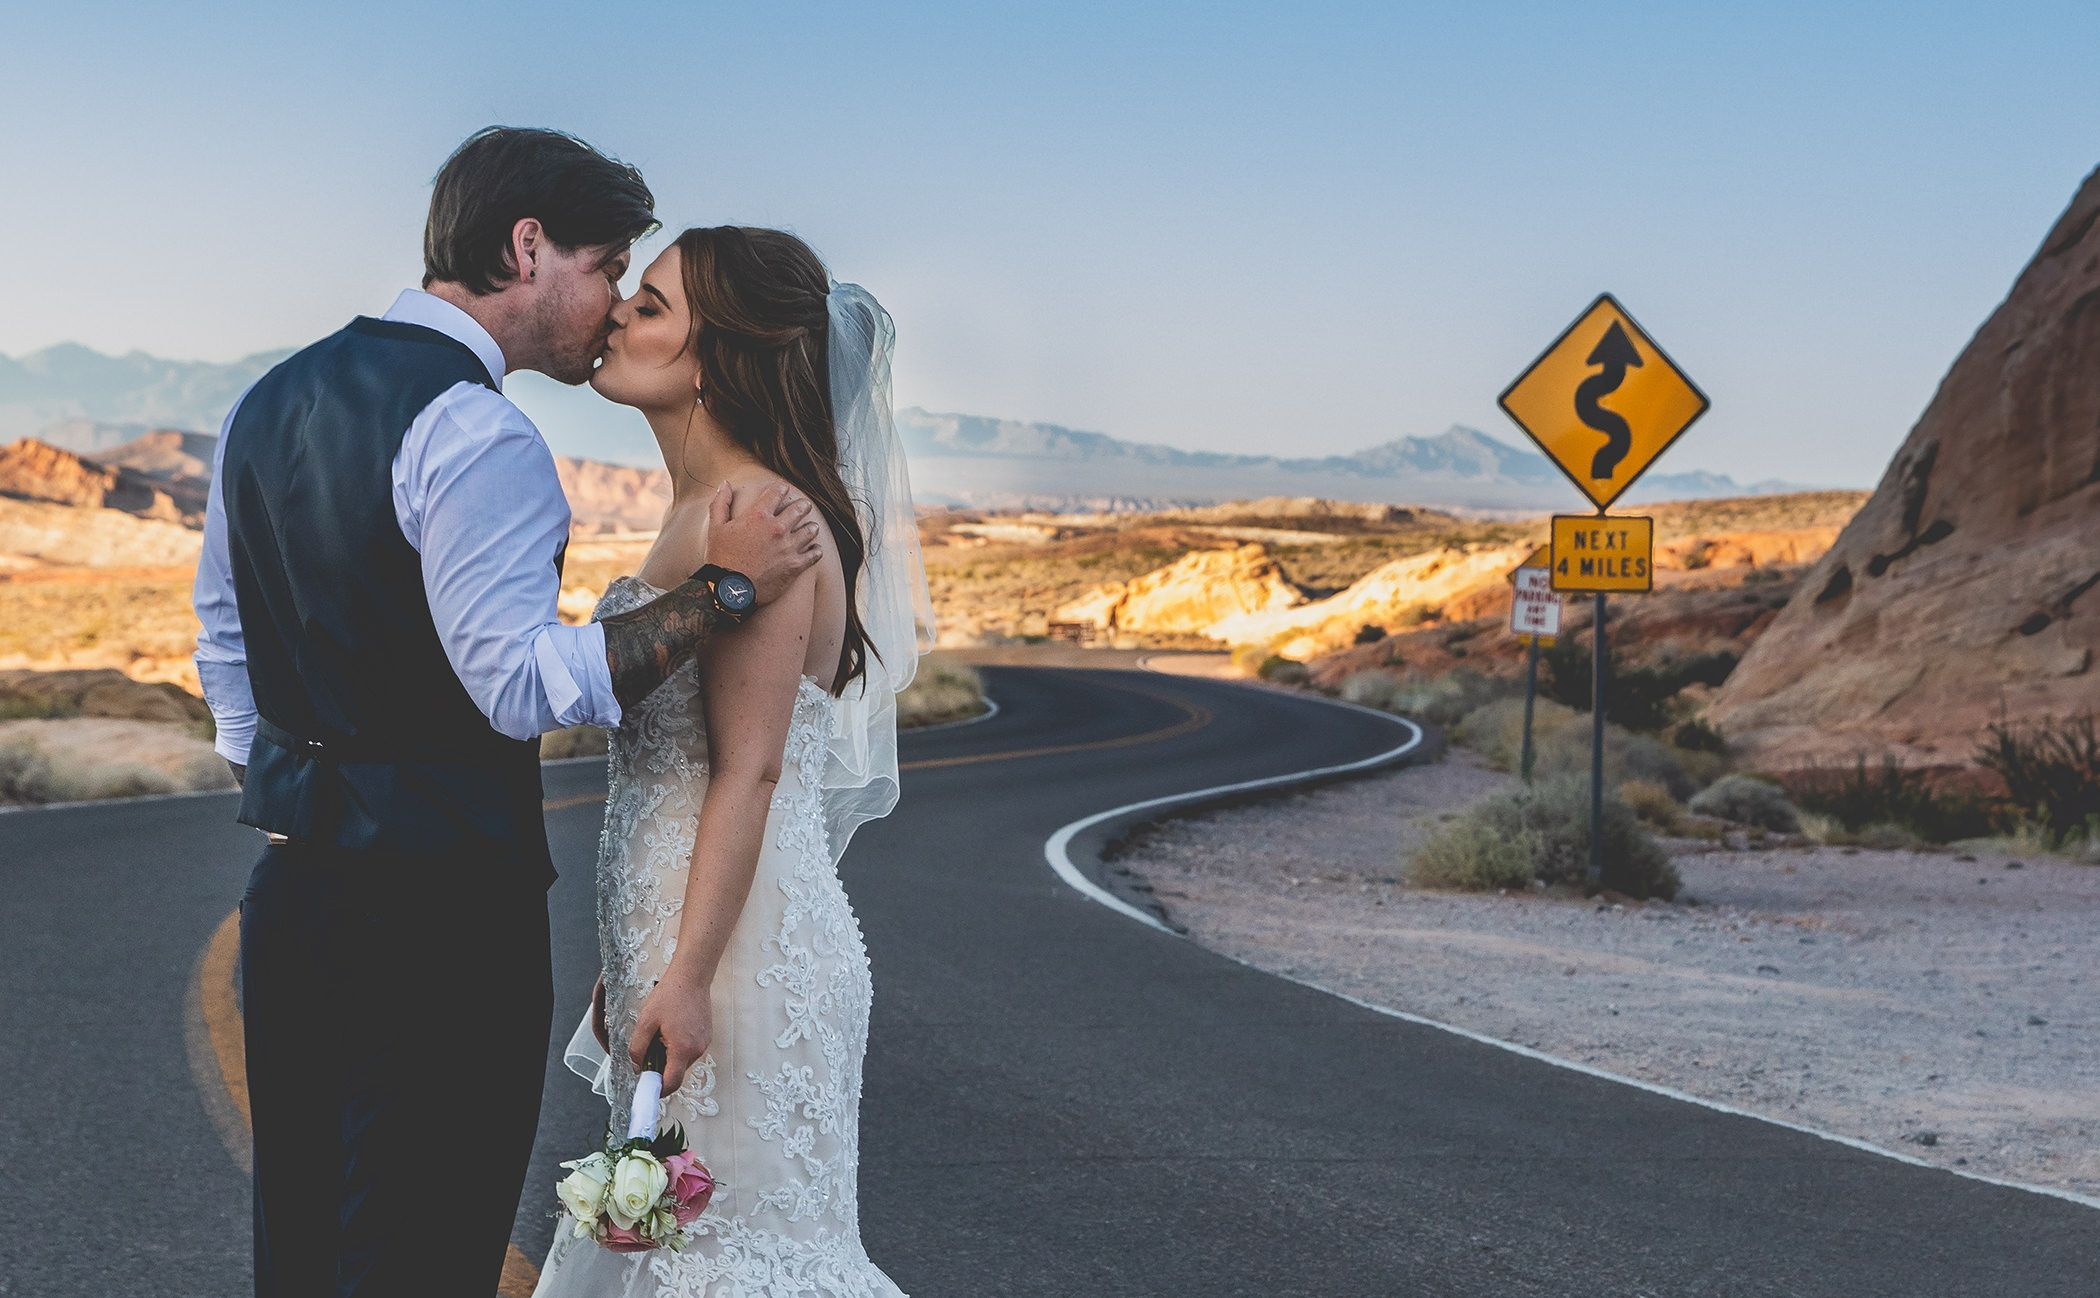 Valley of fire winding roads wedding couple kiss